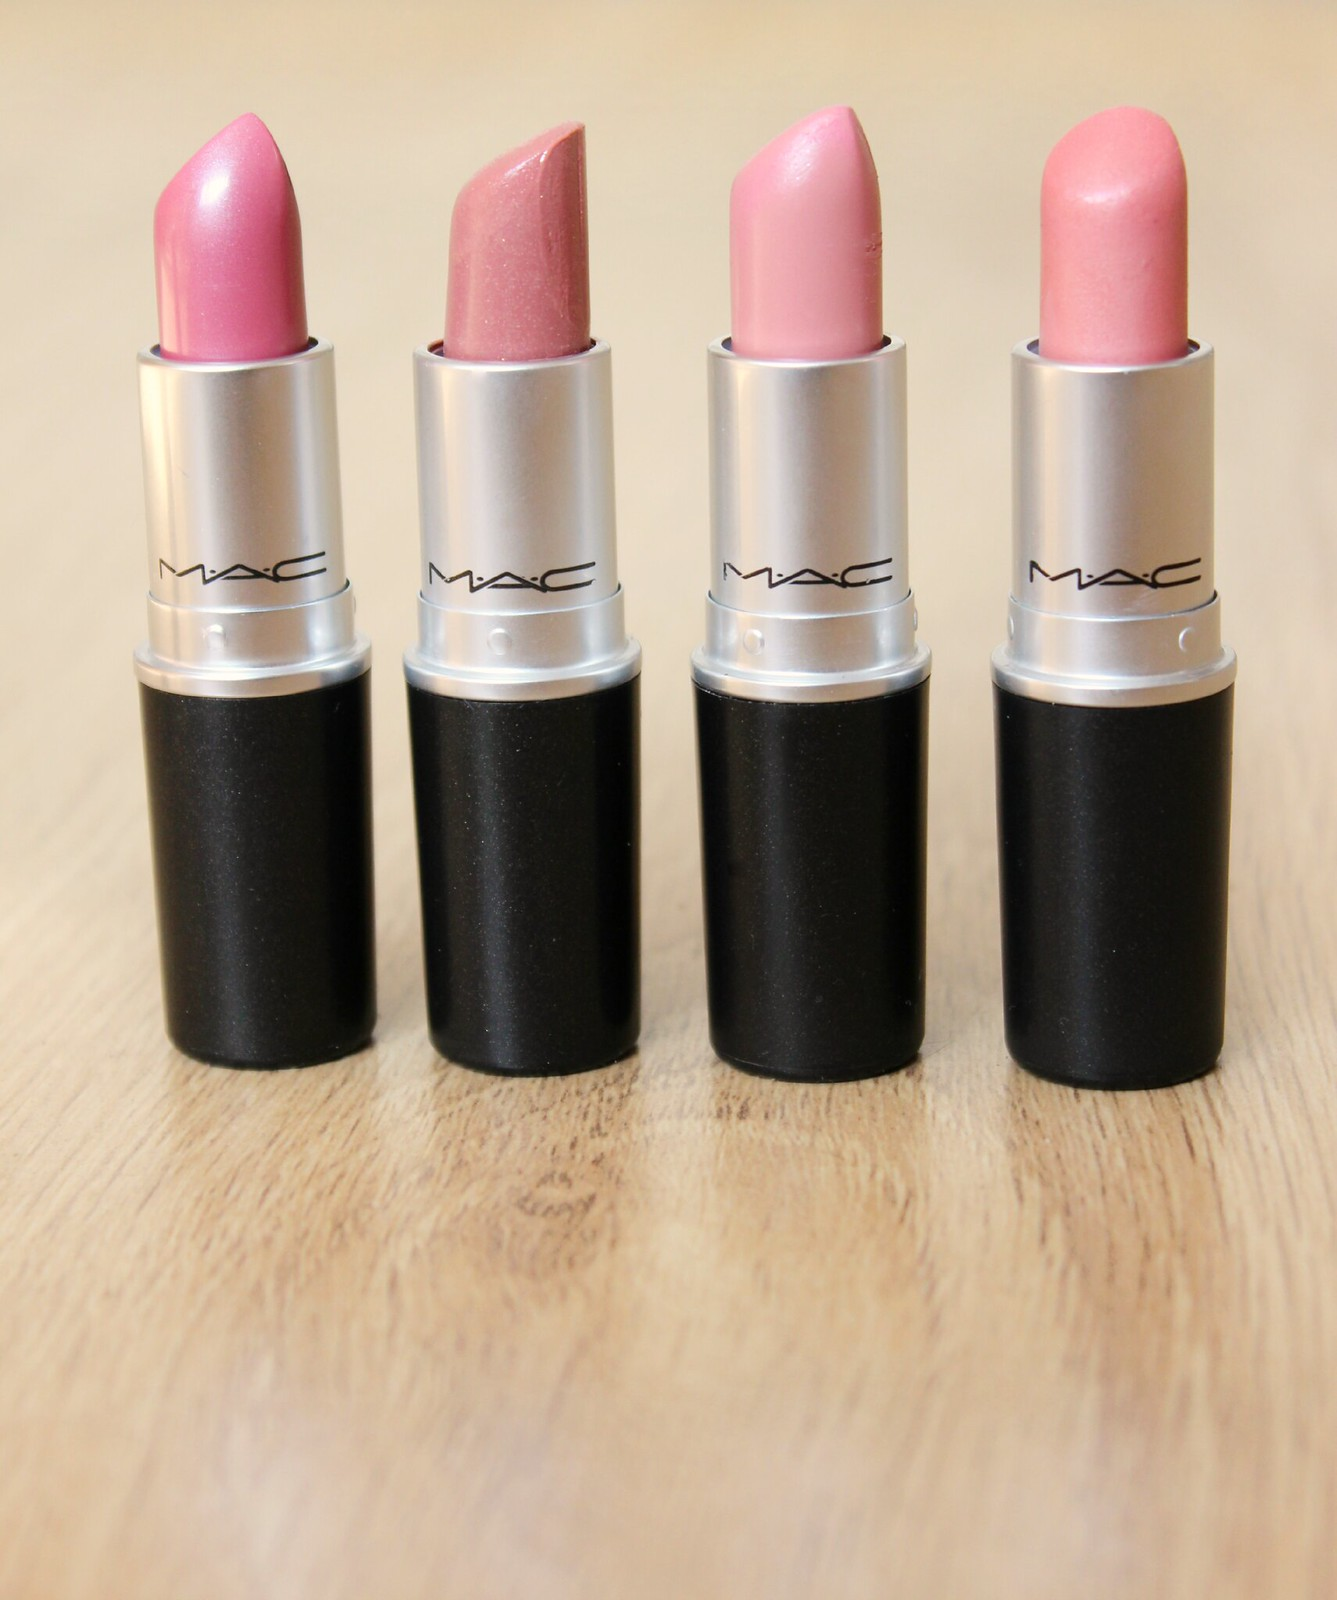 MAC Lipstick Collection